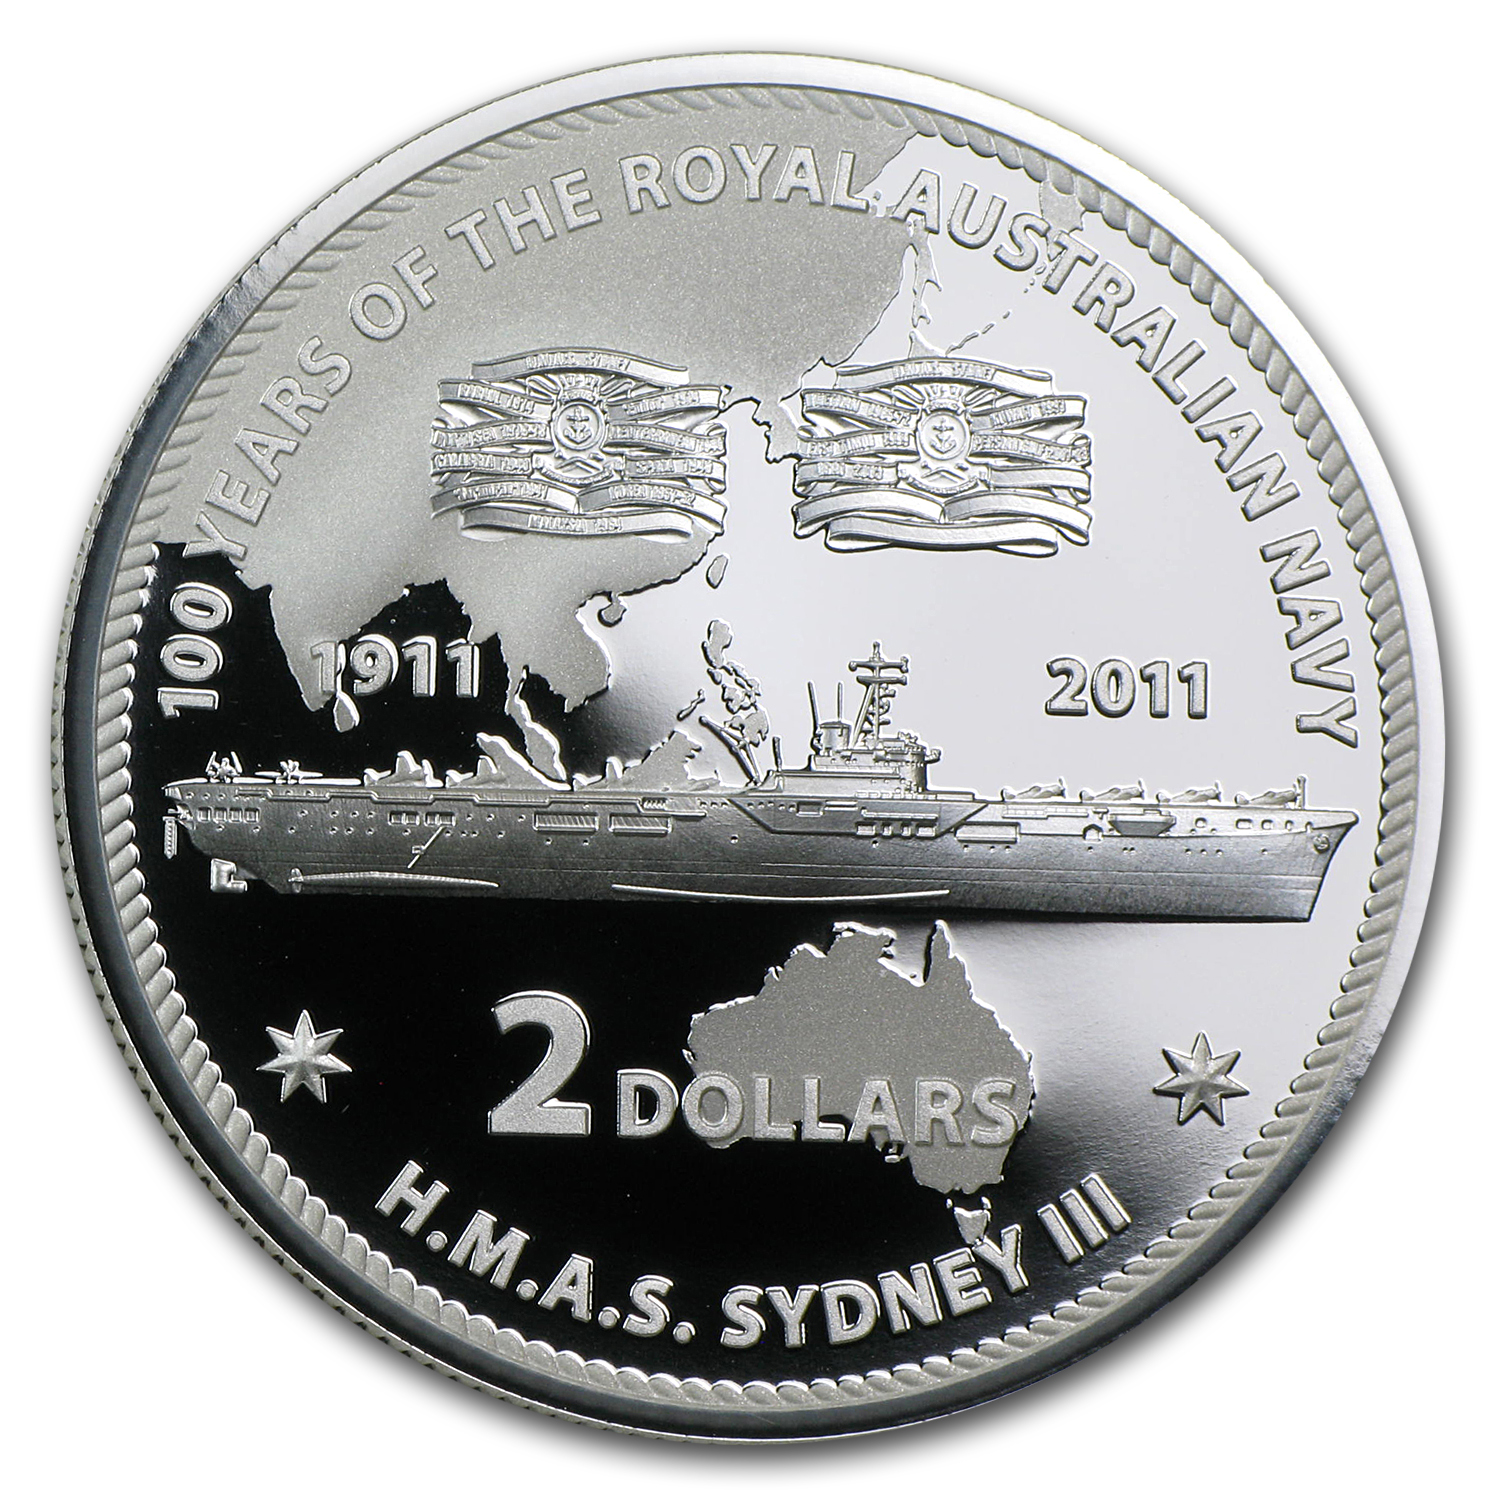 2011 Royal Australian Mint 100 Year of the Navy 6 Silver Coin Set